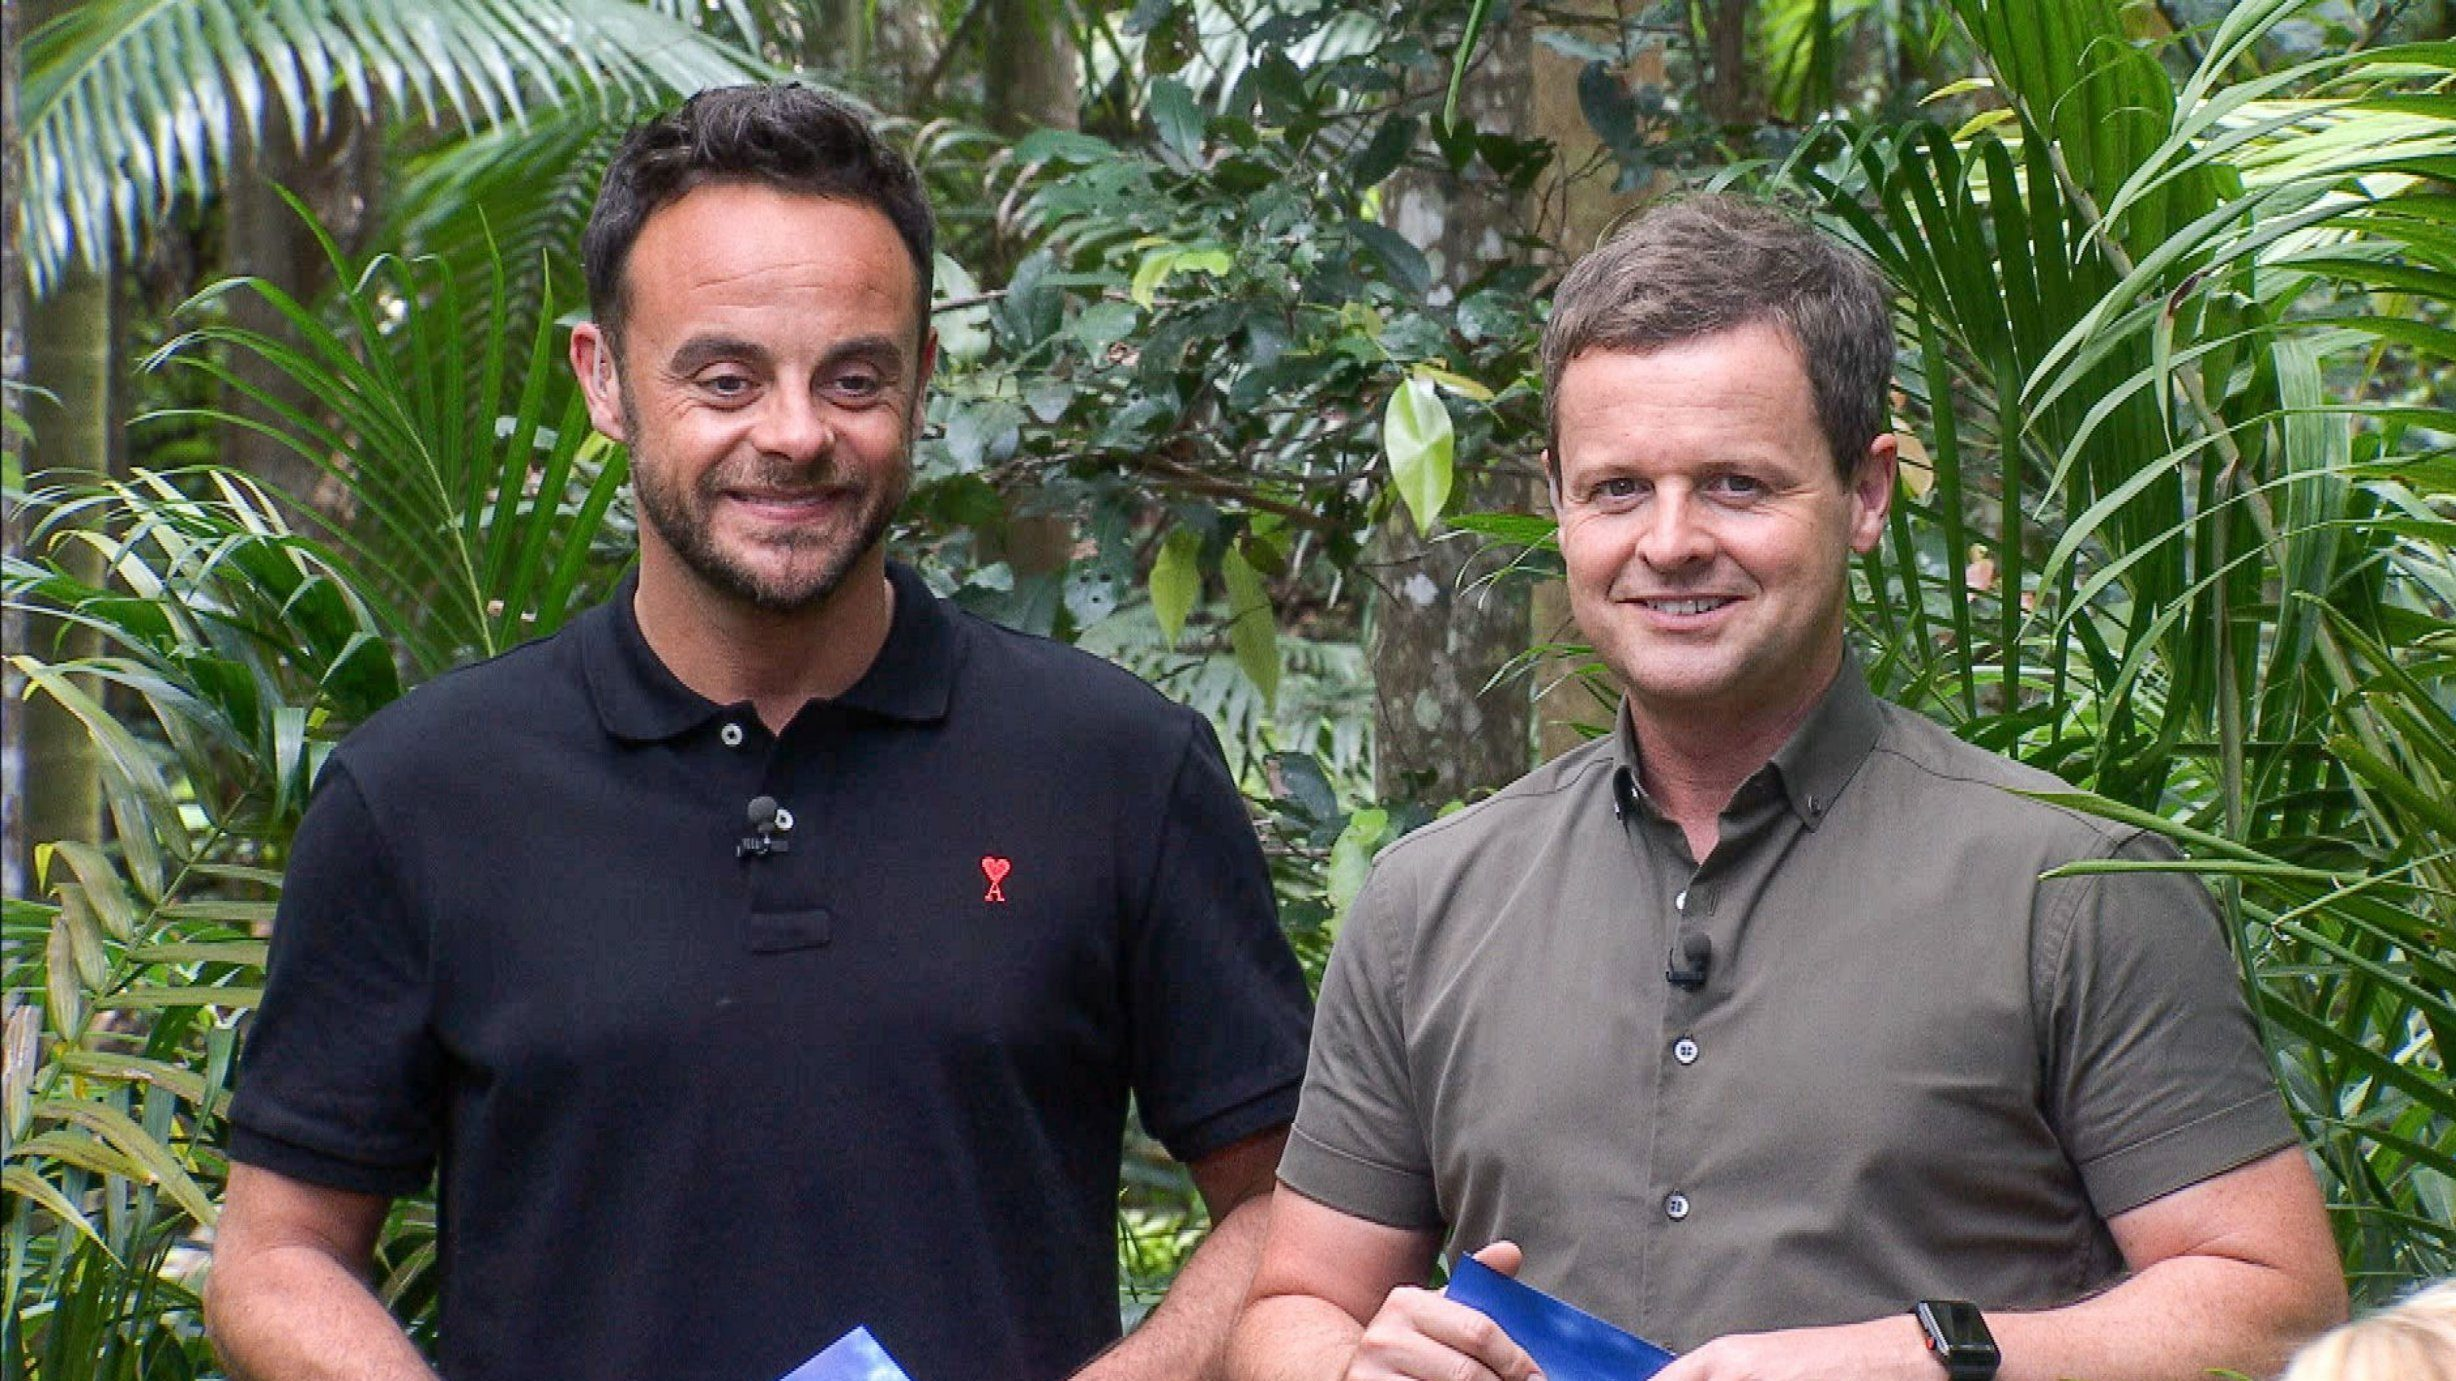 Ant McPartlin gets well wishes from fans as he breaks month-long social media silence ahead of Britain's Got Talent